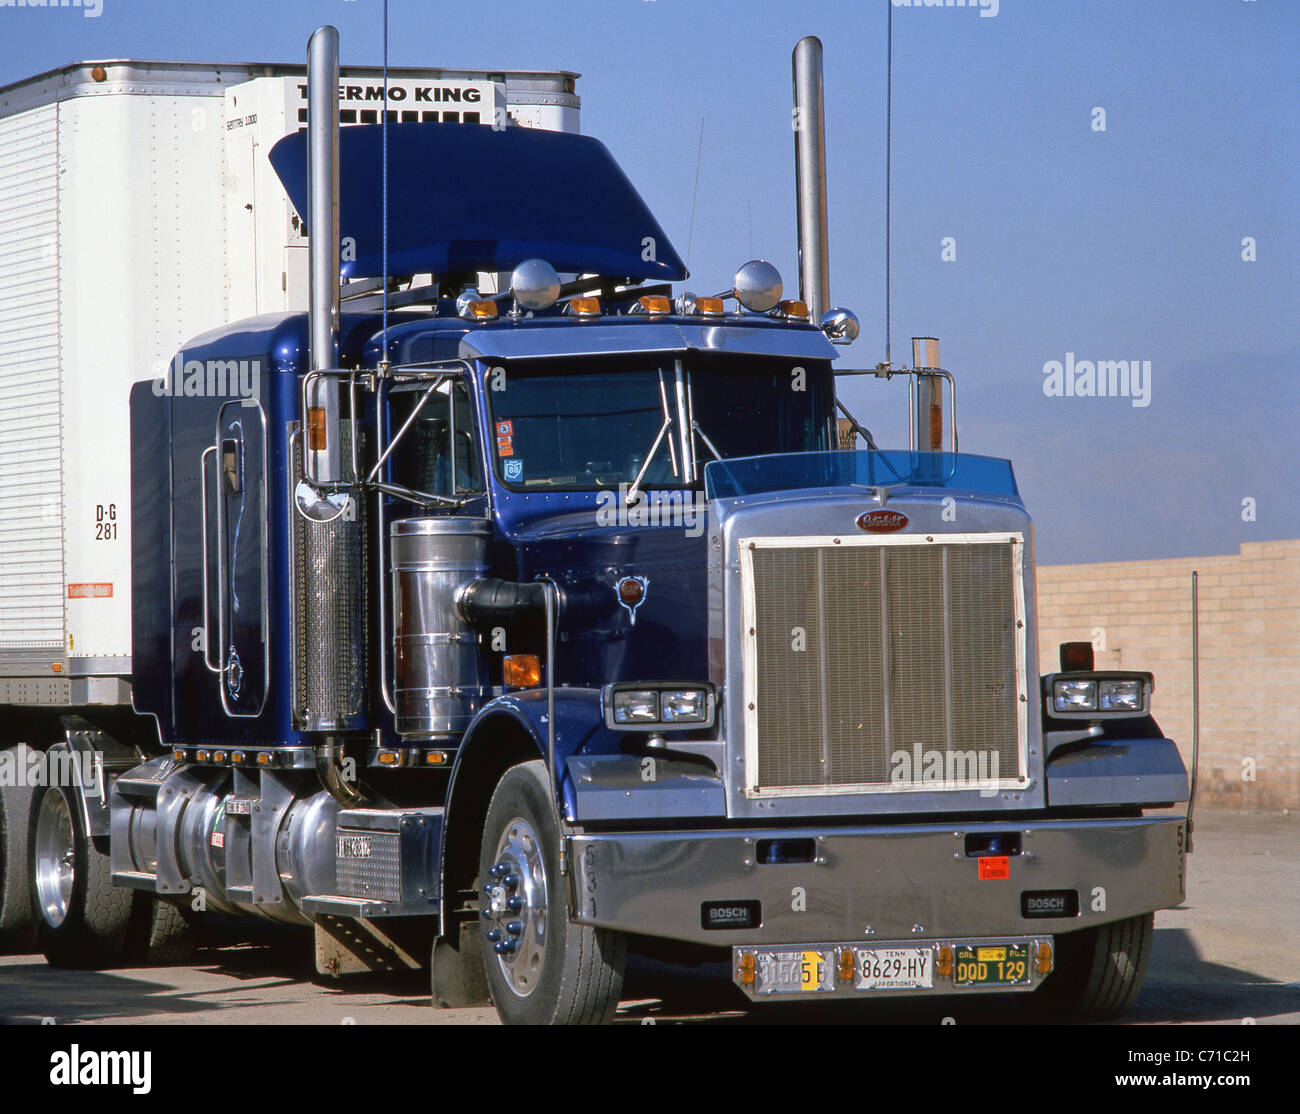 camion am ricain peterbilt sur autoroute californie tats unis d 39 am rique banque d 39 images. Black Bedroom Furniture Sets. Home Design Ideas